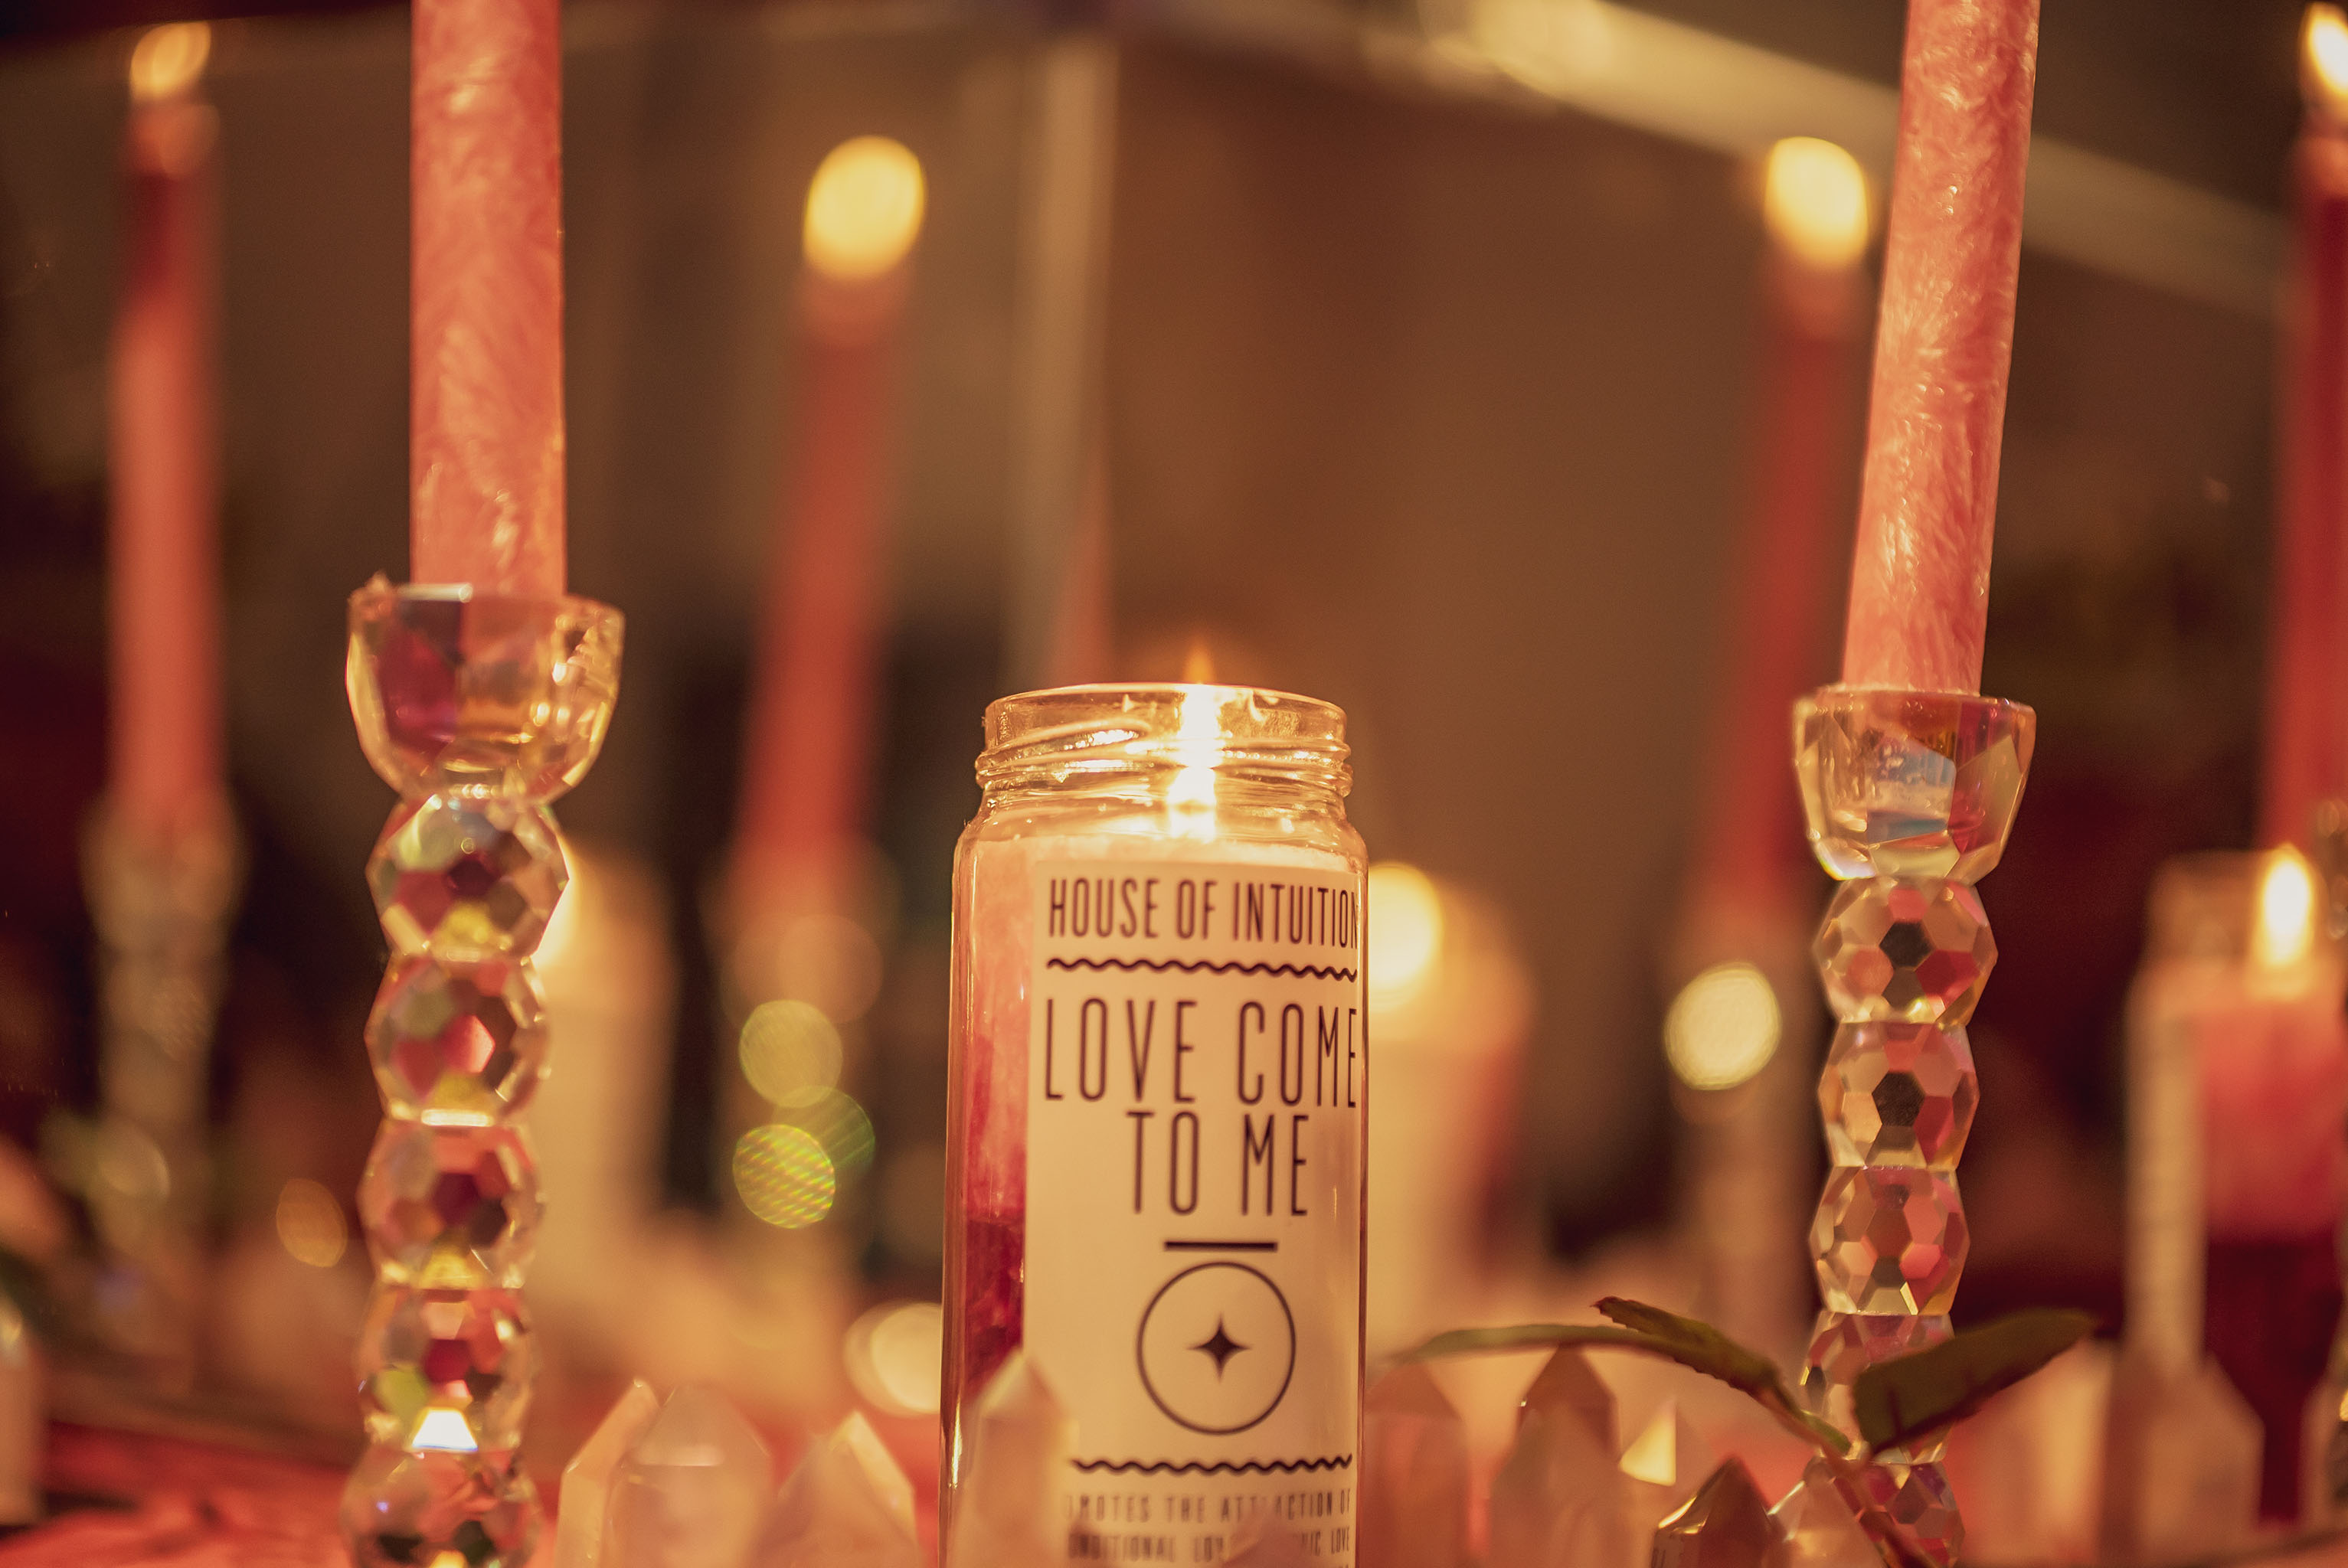 The House of Intuition unconditional love candle.